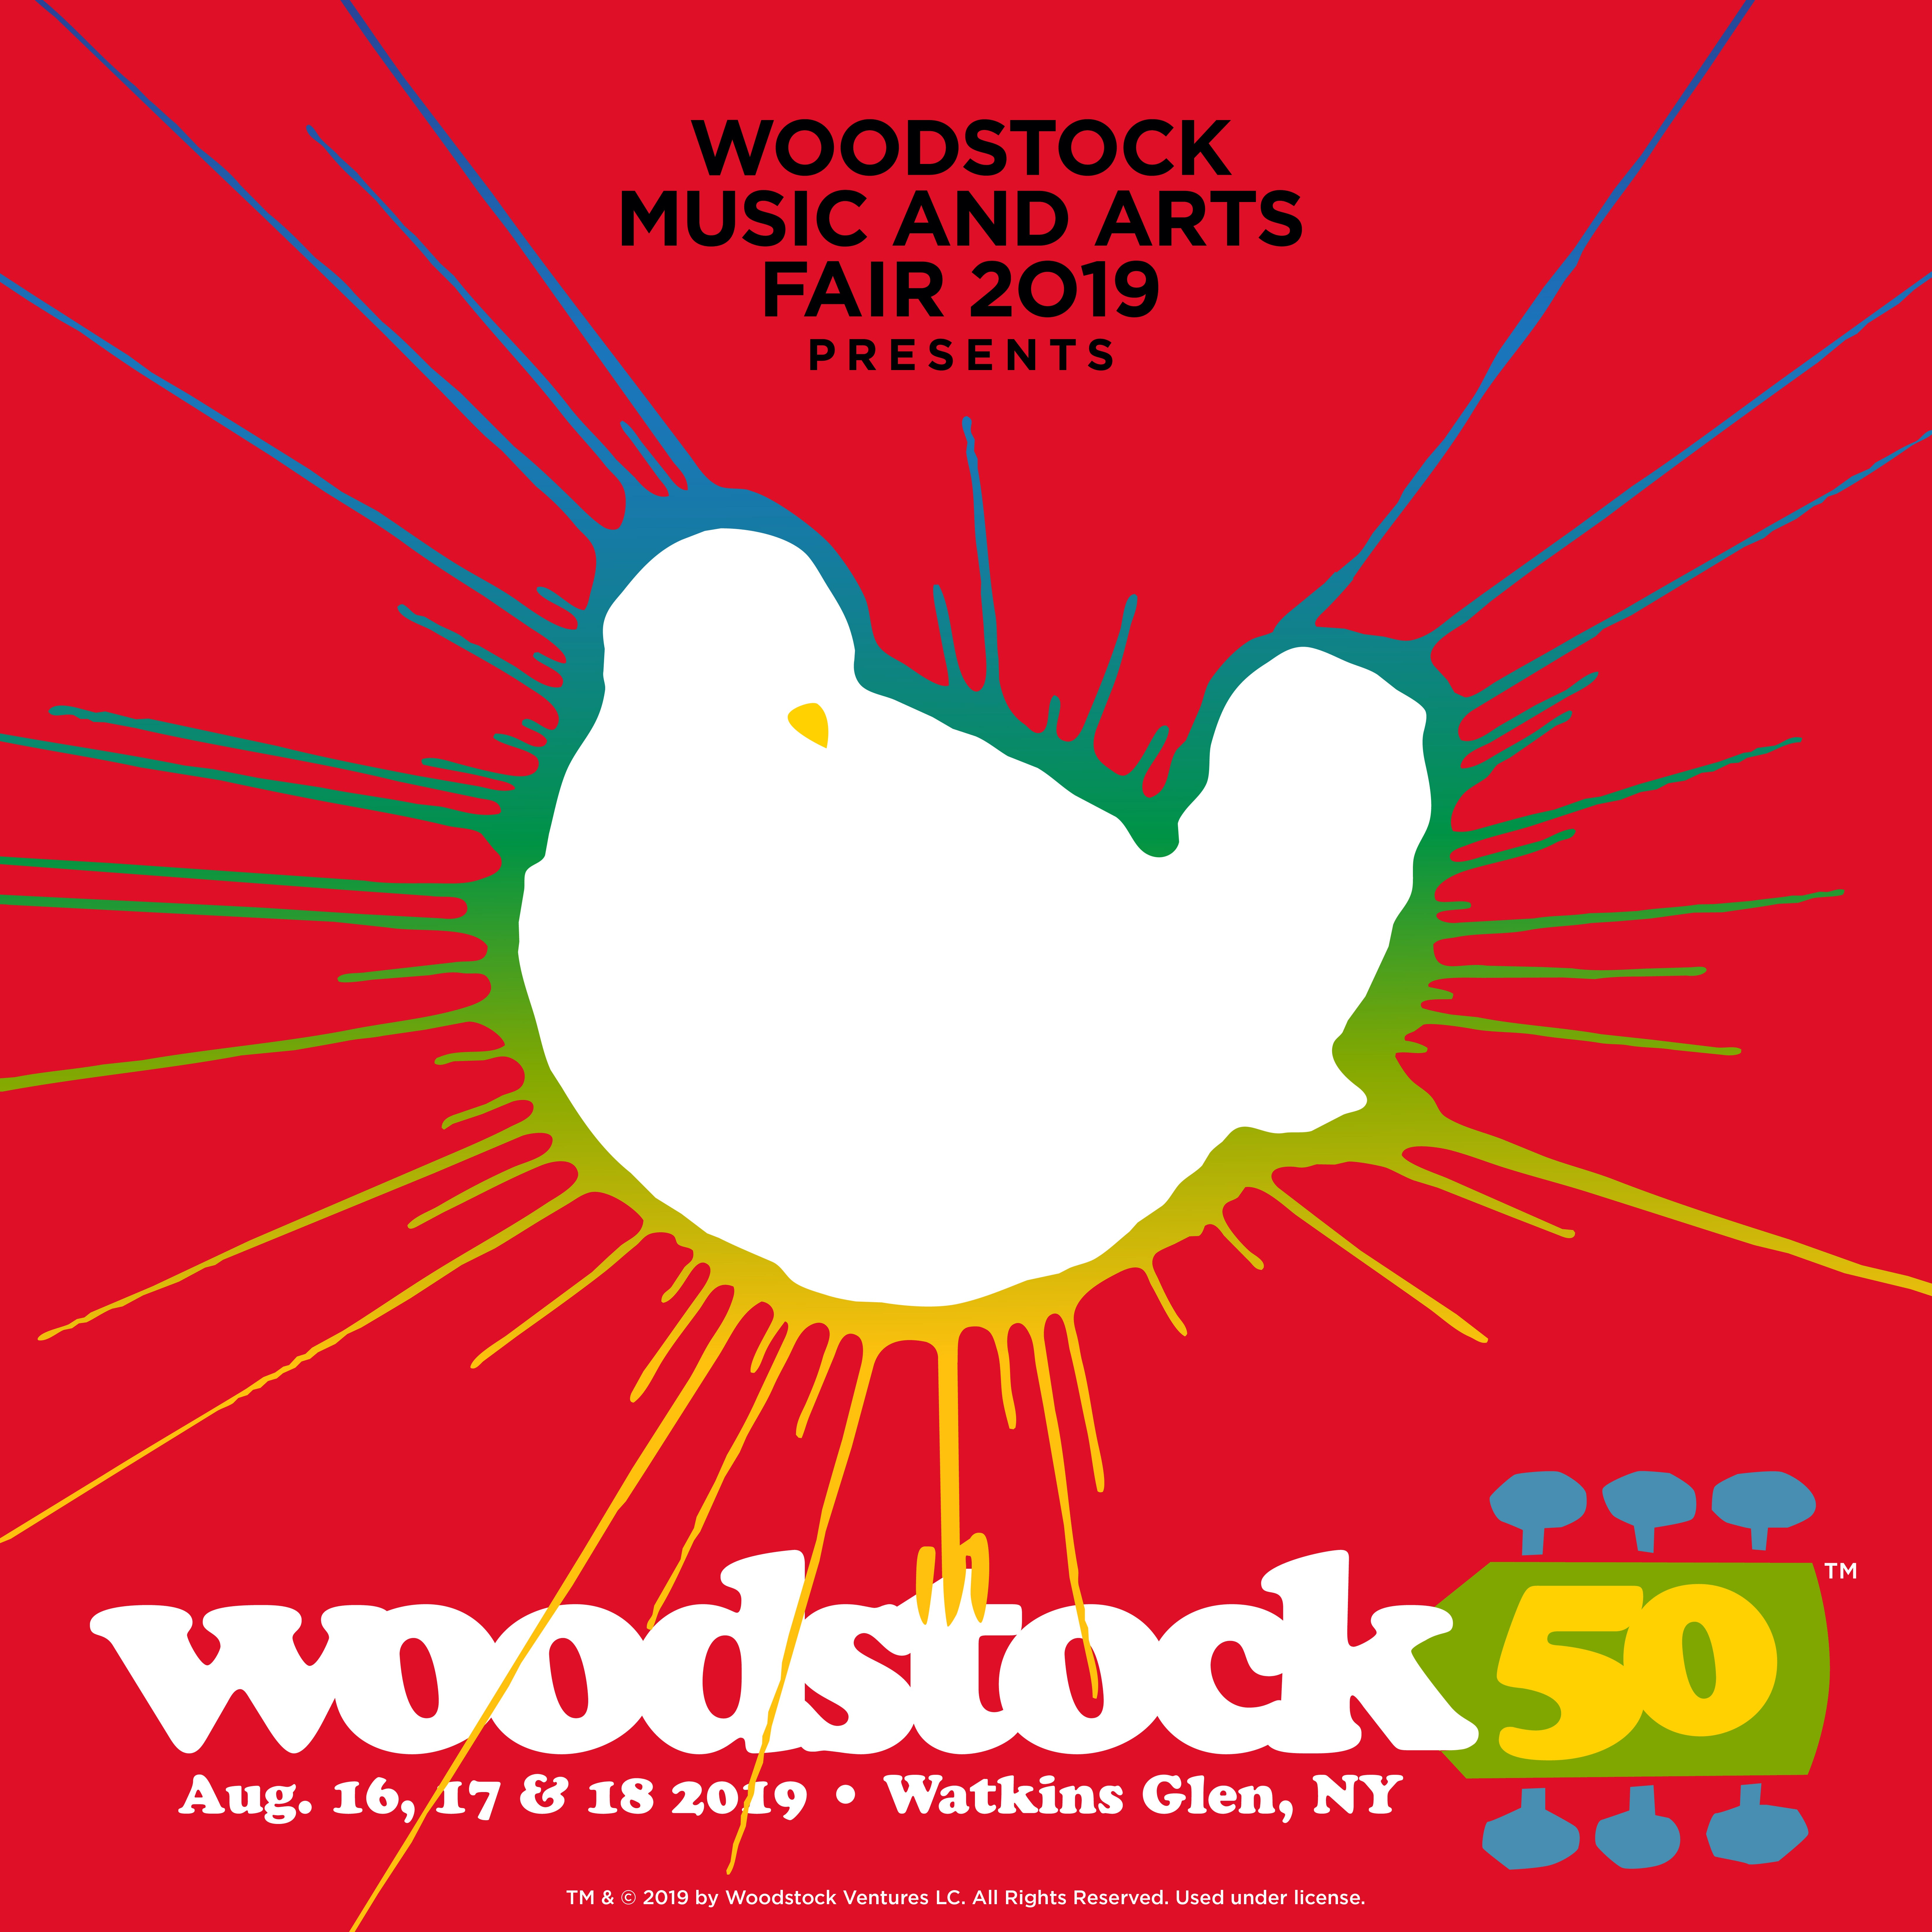 The logo for the Woodstock 50 anniversary concert.